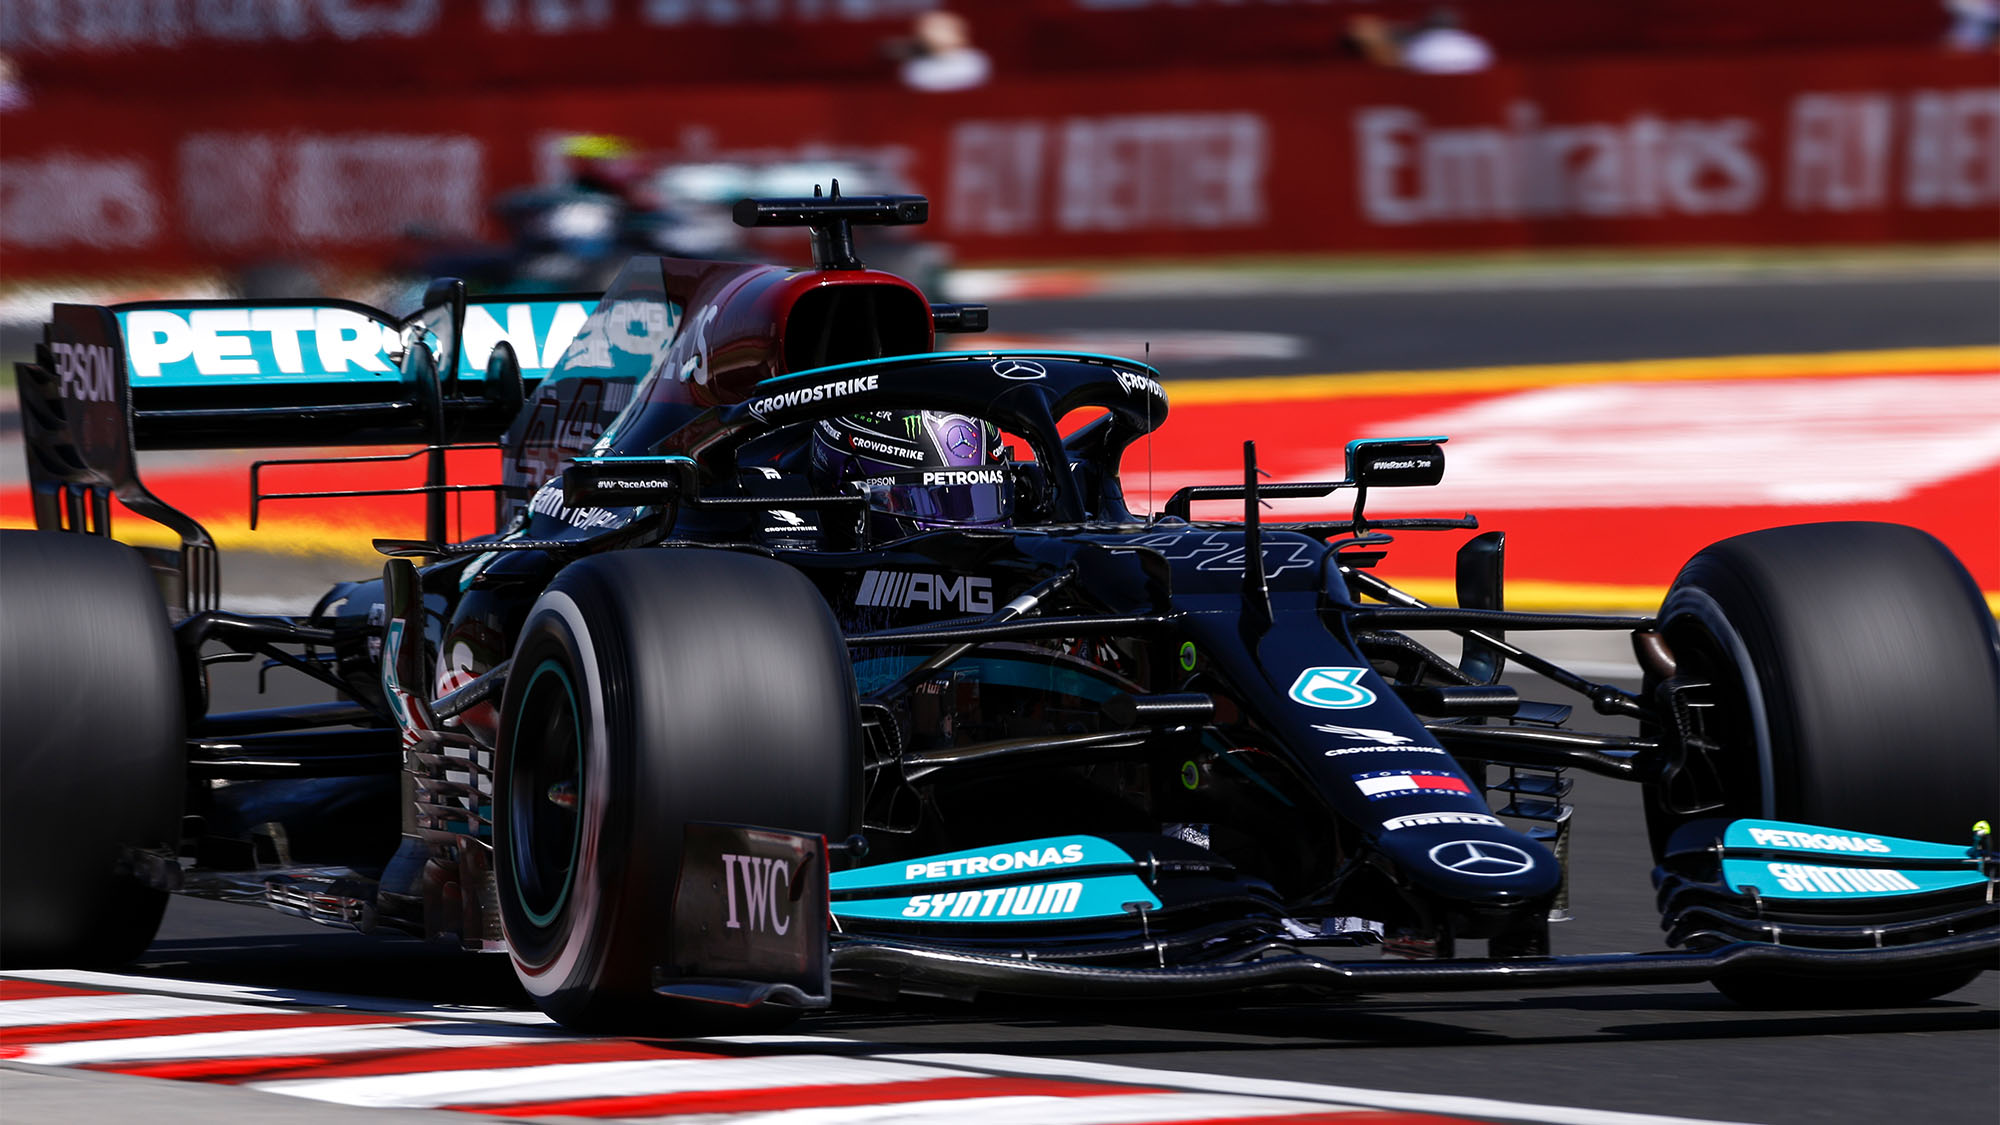 44 HAMILTON Lewis (gbr), Mercedes AMG F1 GP W12 E Performance, action during the Formula 1 Magyar Nagydij 2021, Hungarian Grand Prix, 11th round of the 2021 FIA Formula One World Championship from July 30 to August 1, 2021 on the Hungaroring, in Mogyorod, near Budapest, Hungary - Photo DPPI